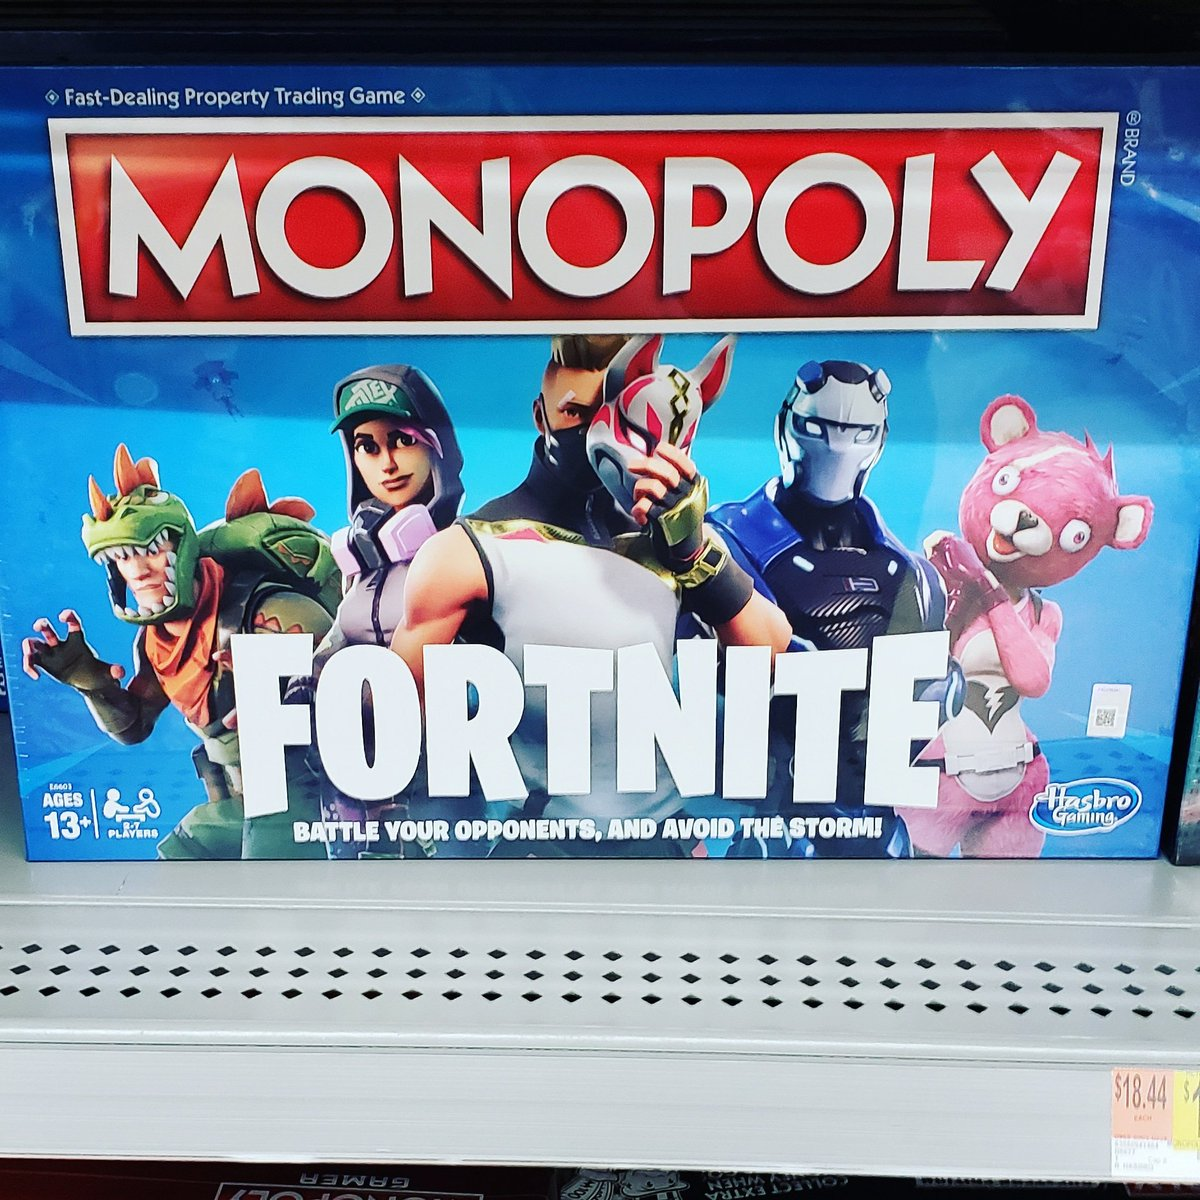 I know all of you are tired of the Fortnite stuff, so this will be the last bit of it and tomorrow we will be back to normal shitposting. #fortnite #meme #epicgames #epicgamermoment #shitpost #art #monopoly #willsmith #markassbrownlee  #theme #mentalillness <br>http://pic.twitter.com/KKGaAFD1Yc